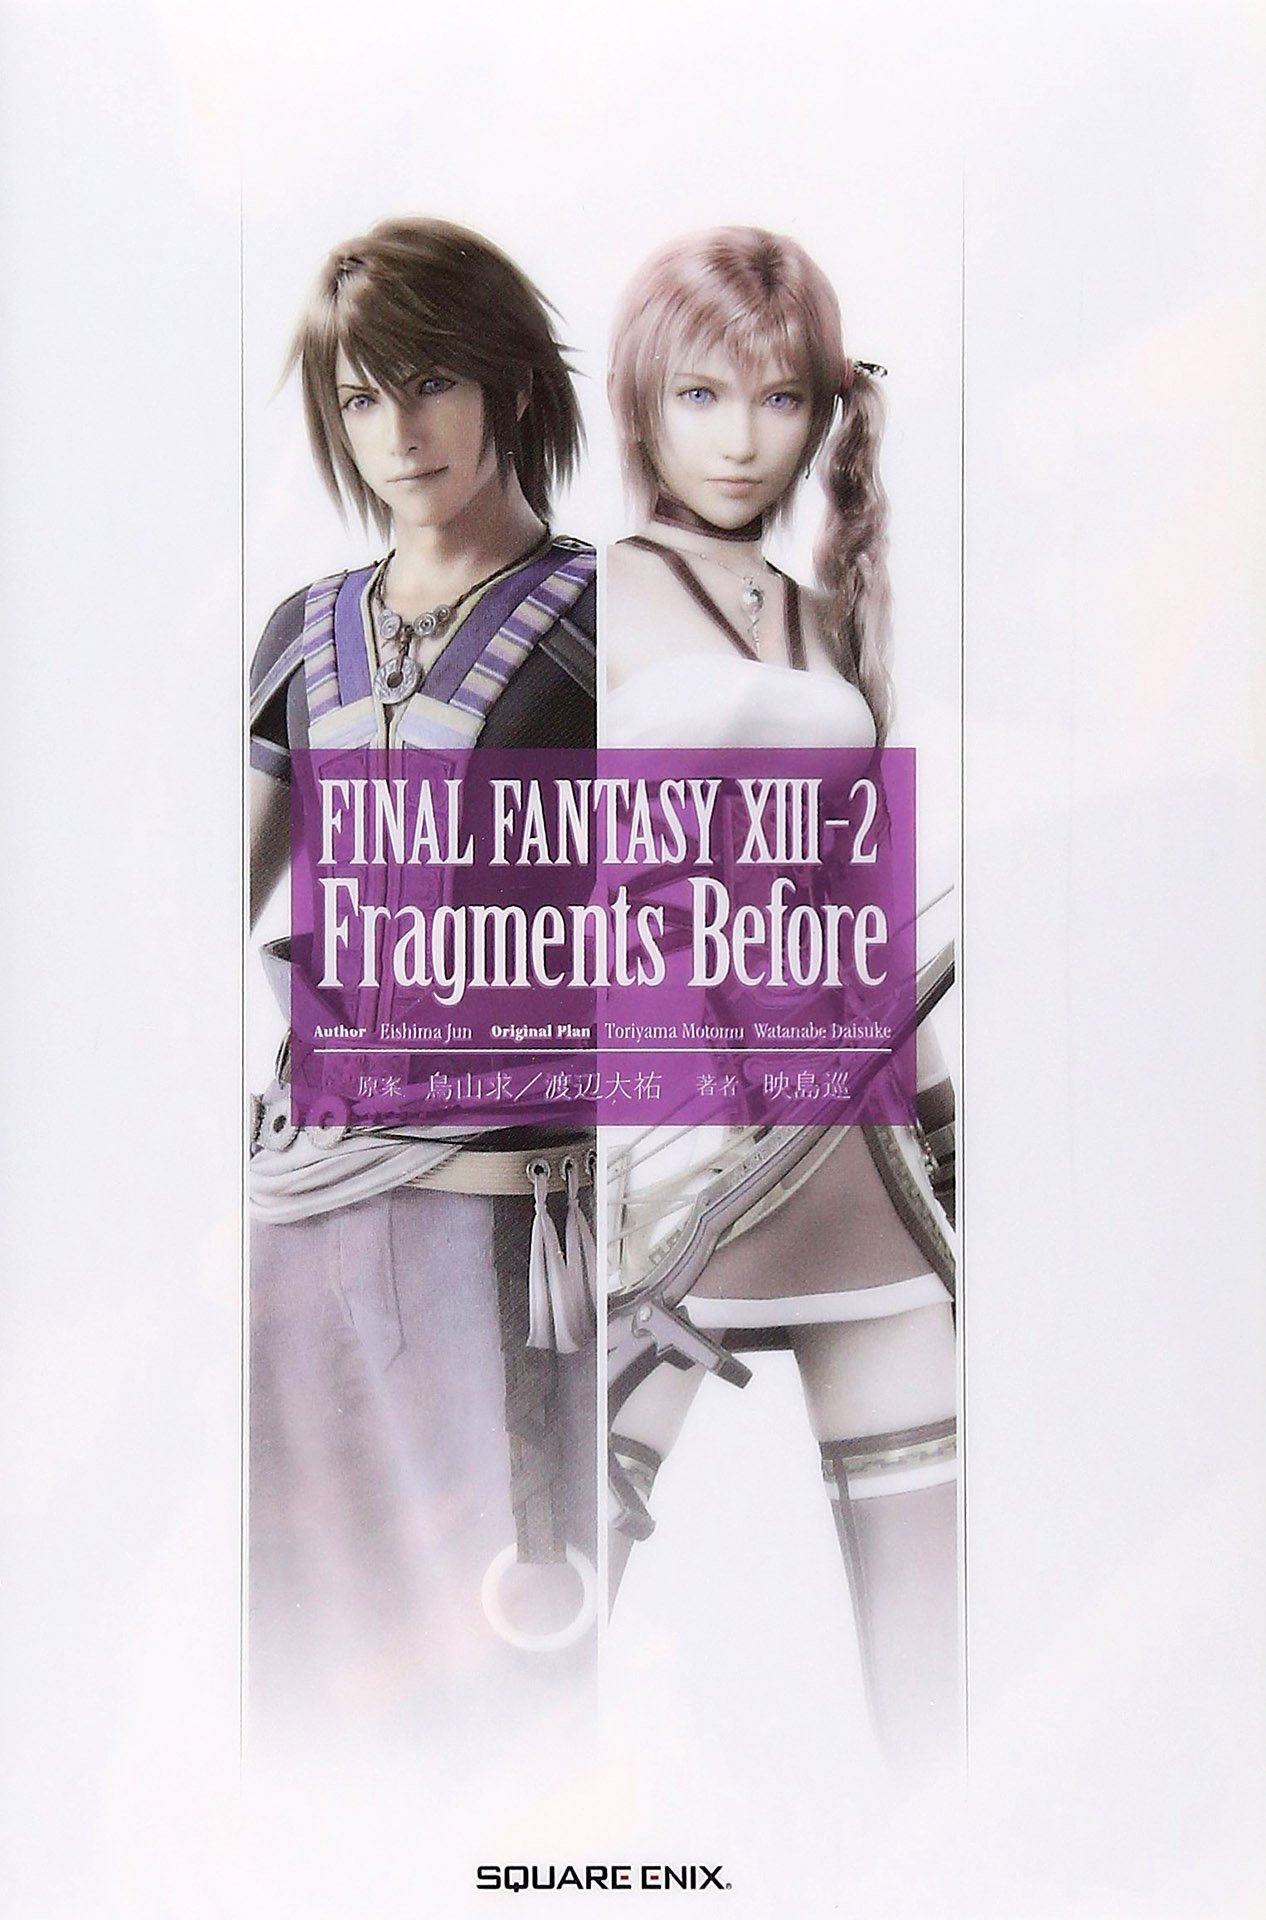 Final Fantasy XIII-2: Fragments Before